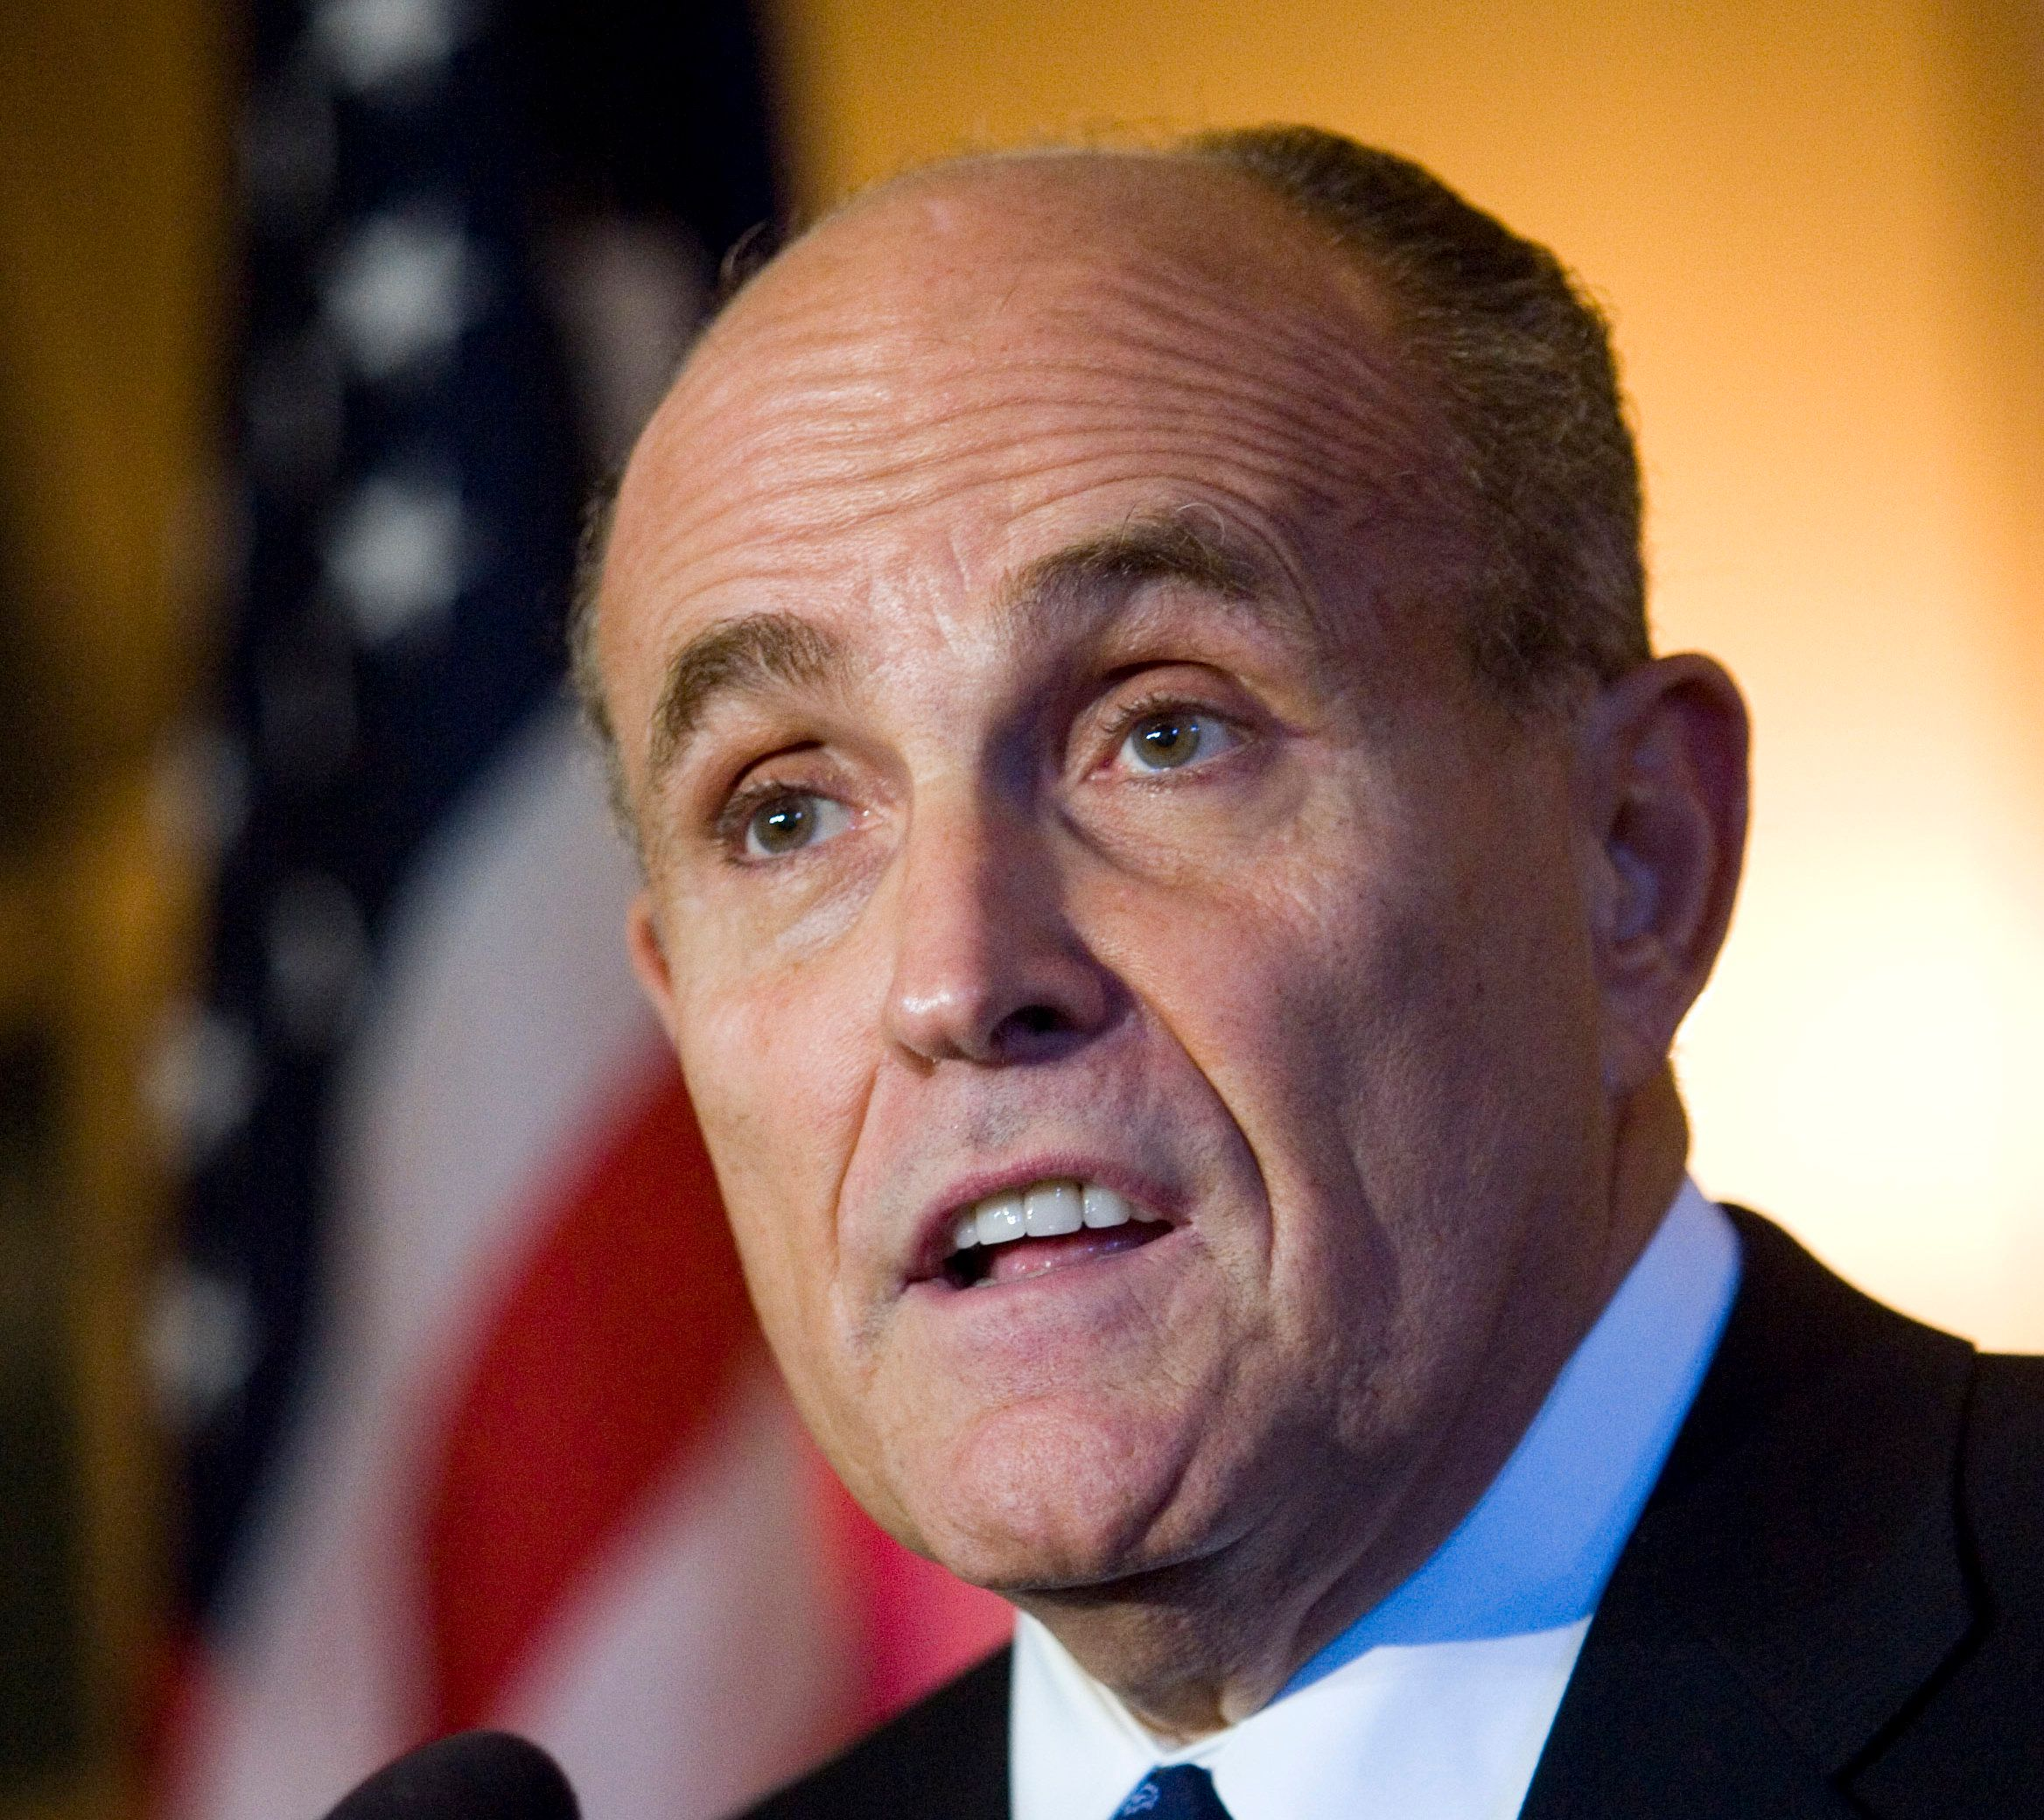 """FILE - In this Oct. 18, 2007 file photo, Rudy Giuliani answers questions following a fundraiser in Milwaukee. Giuliani is giving Hillary Clinton credit for her work on behalf of victims of the Sept. 11, 2001, terrorist attacks. Giuliani was asked at a Republican Party briefing Thursday, July 28, 2016, in Philadelphia whether he took issue with the Democratic convention speakers who'd been praising Clinton. Giuliani said she was """"enormously supportive and helpful."""" Clinton was a U.S. senator from New York at the time. (AP Photo/Morry Gash, File)"""